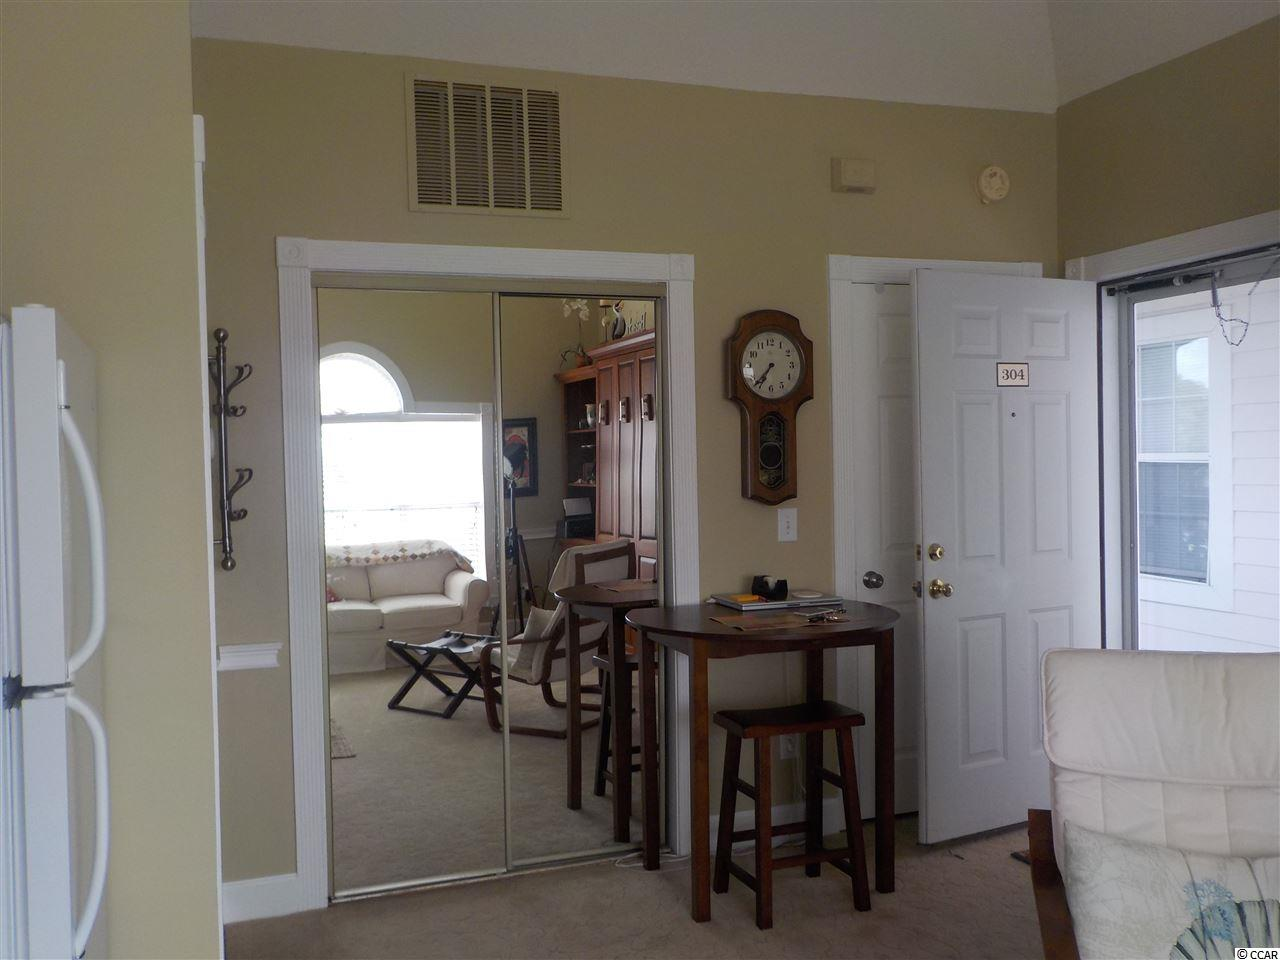 View this Efficiency bedroom condo for sale at  Gardens of Cypress Bay in Little River, SC